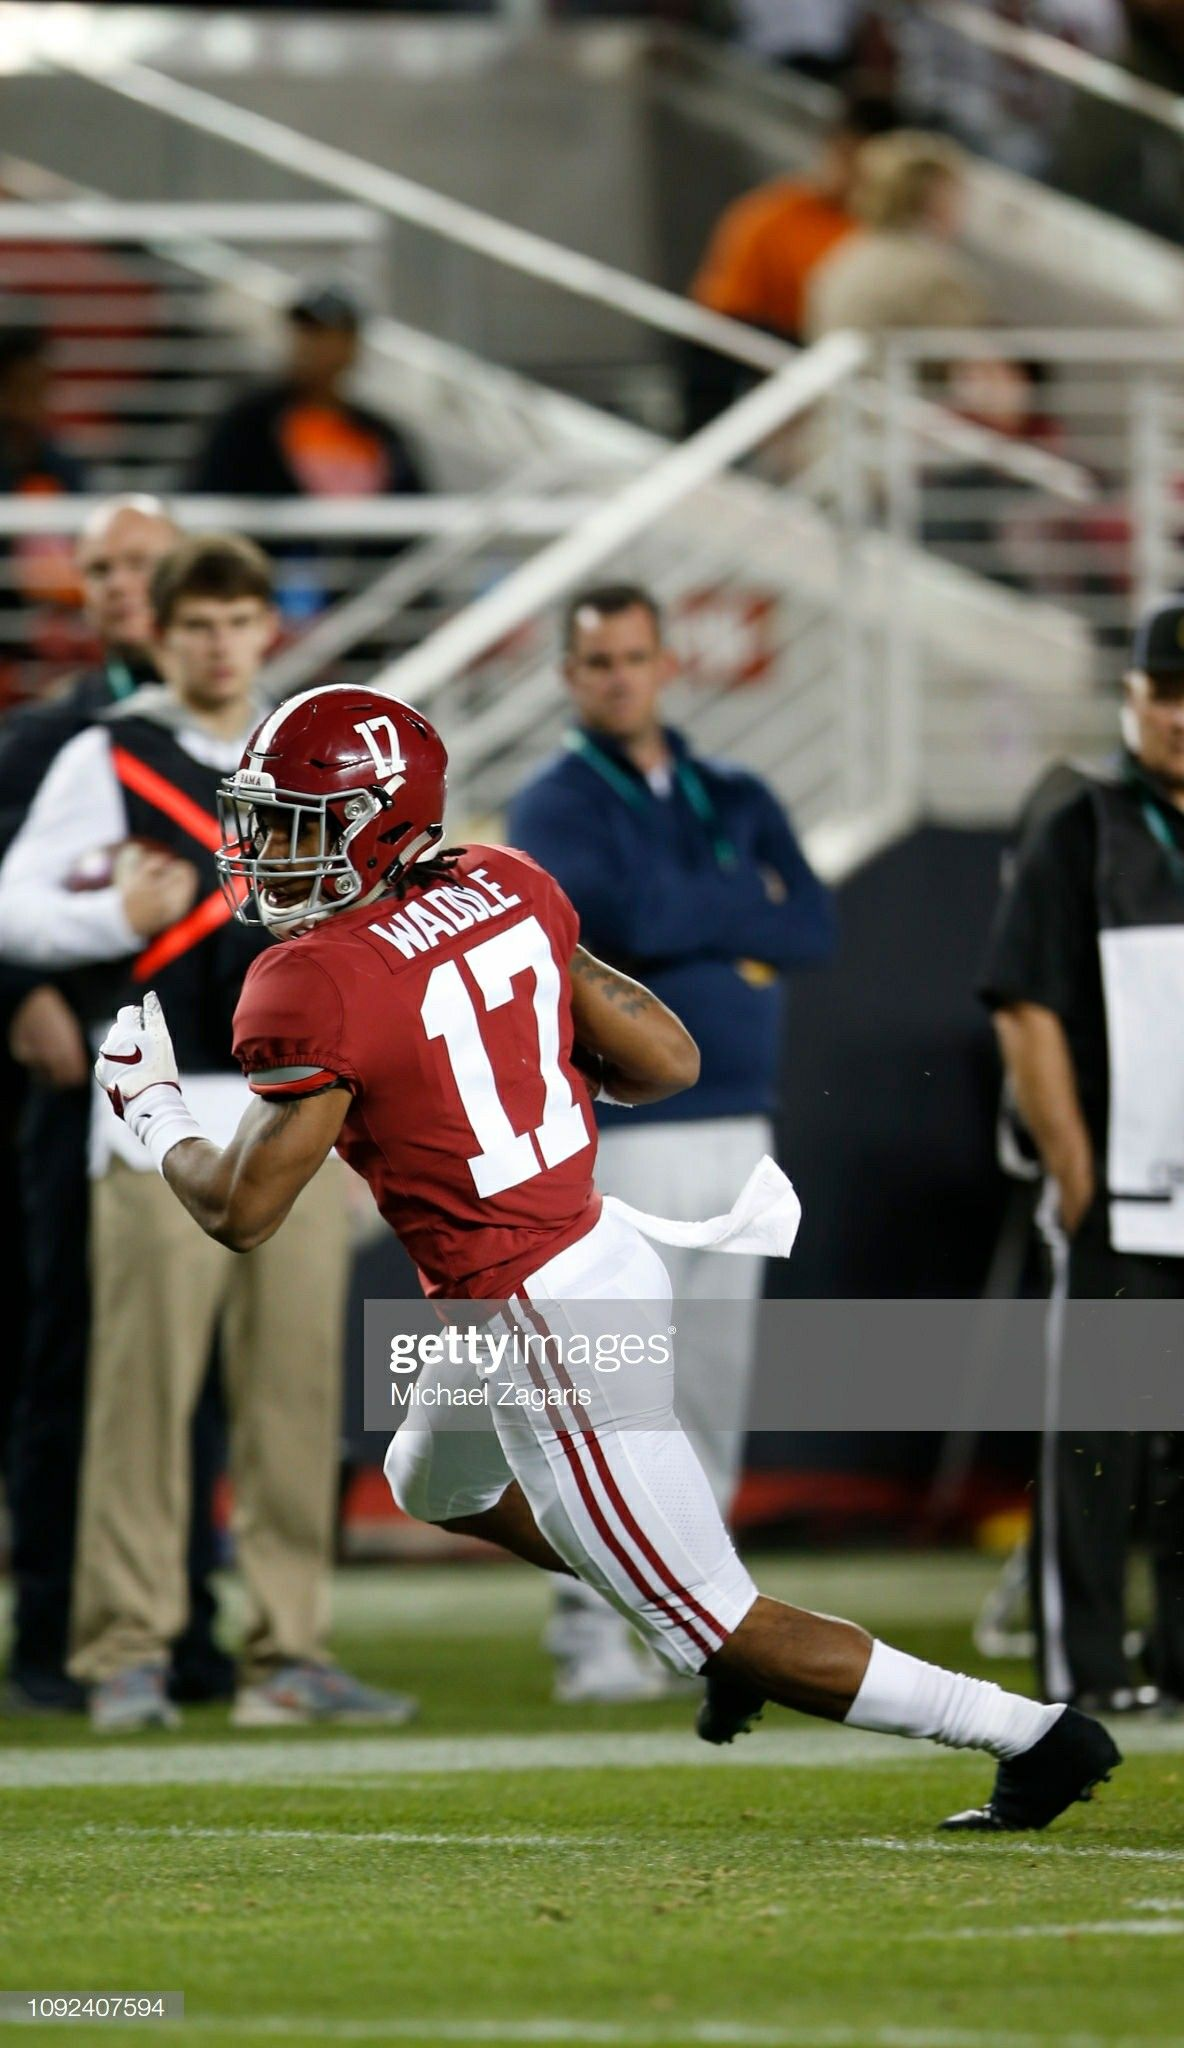 Jaylen Waddle Alabama Alabama Crimson Tide Crimson Tide Football Alabama Crimson Tide Football